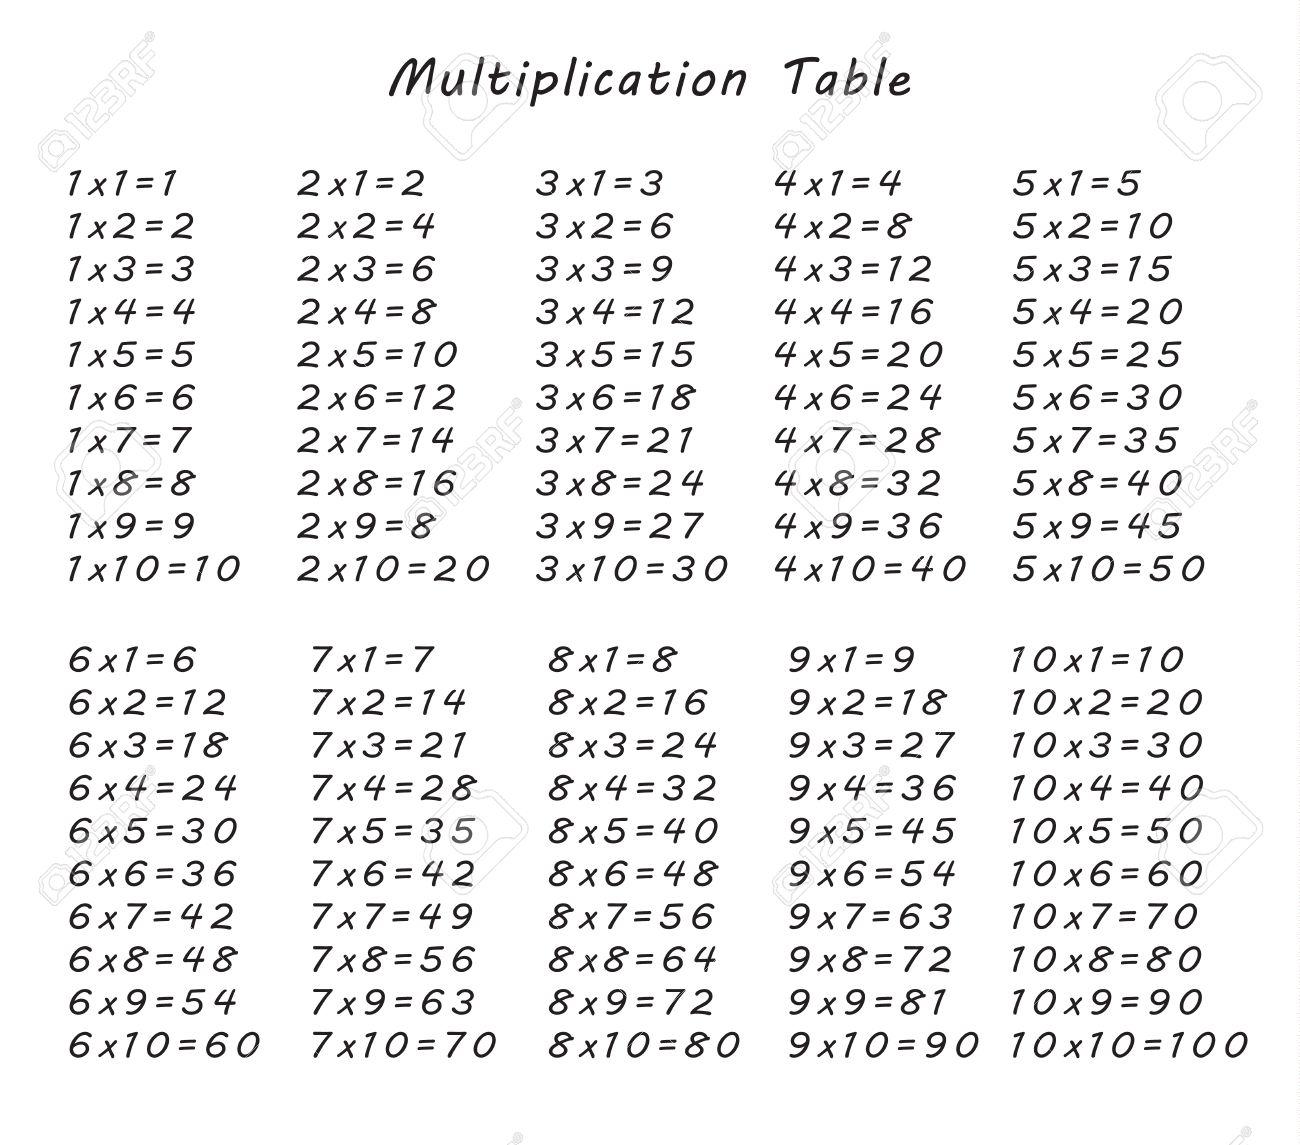 Multiplication Table Between 1 To 10 As Educational Material For Primary  School Stock Vector - 54666395